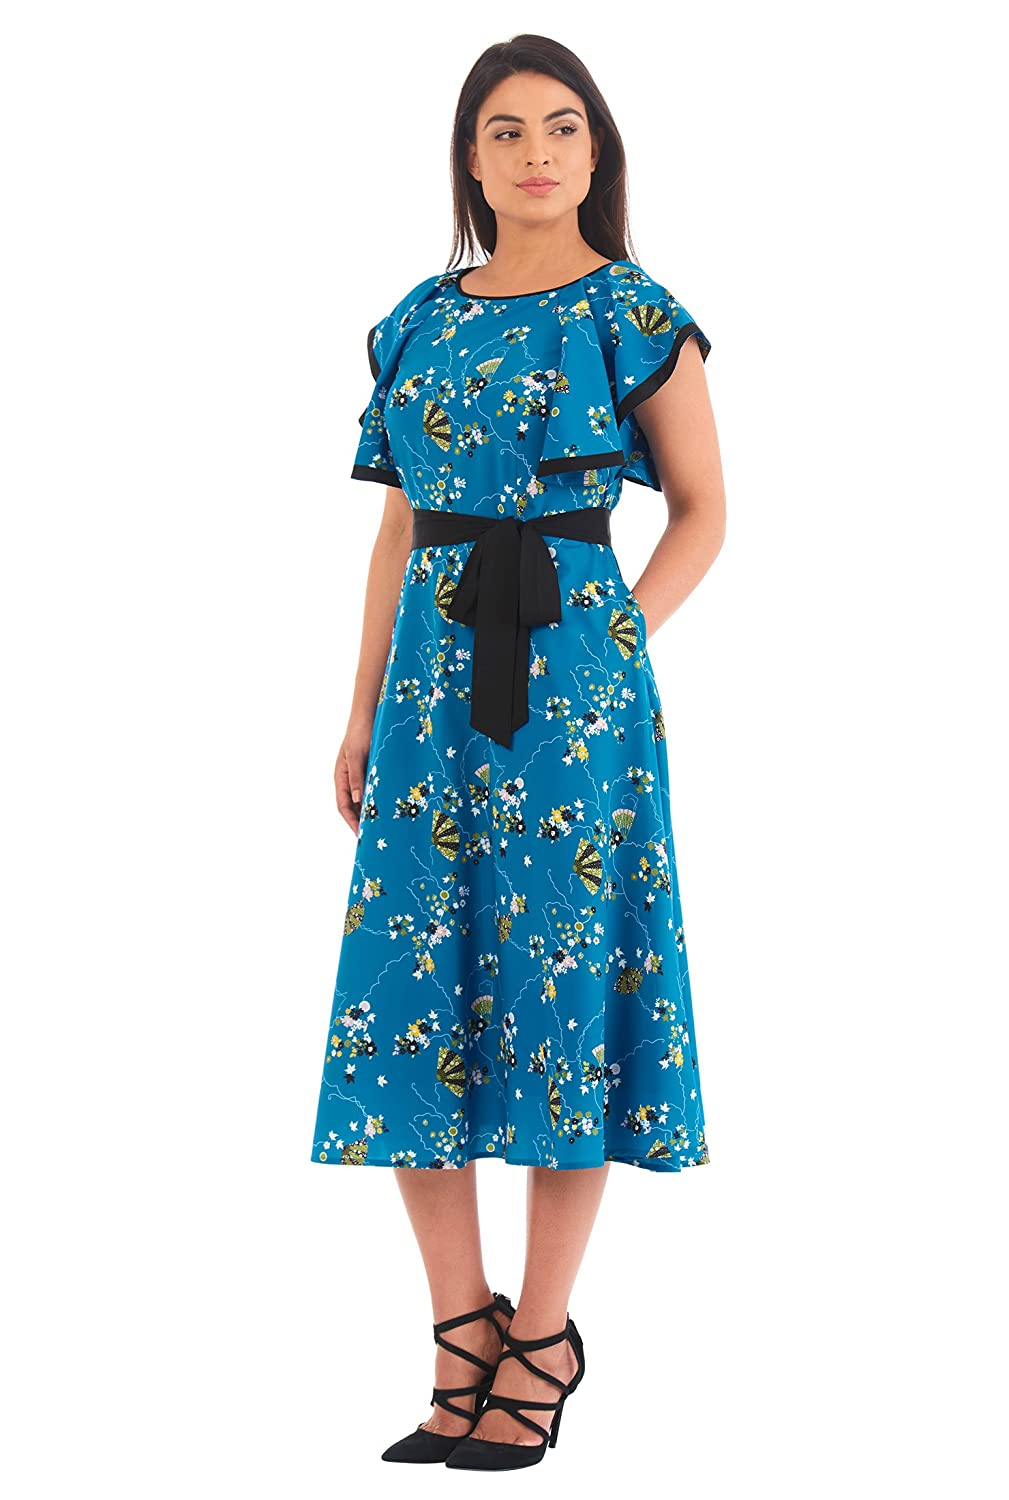 1940s Style Dresses and Clothing eShakti Womens Flutter sleeve floral fan print crepe dress $76.95 AT vintagedancer.com